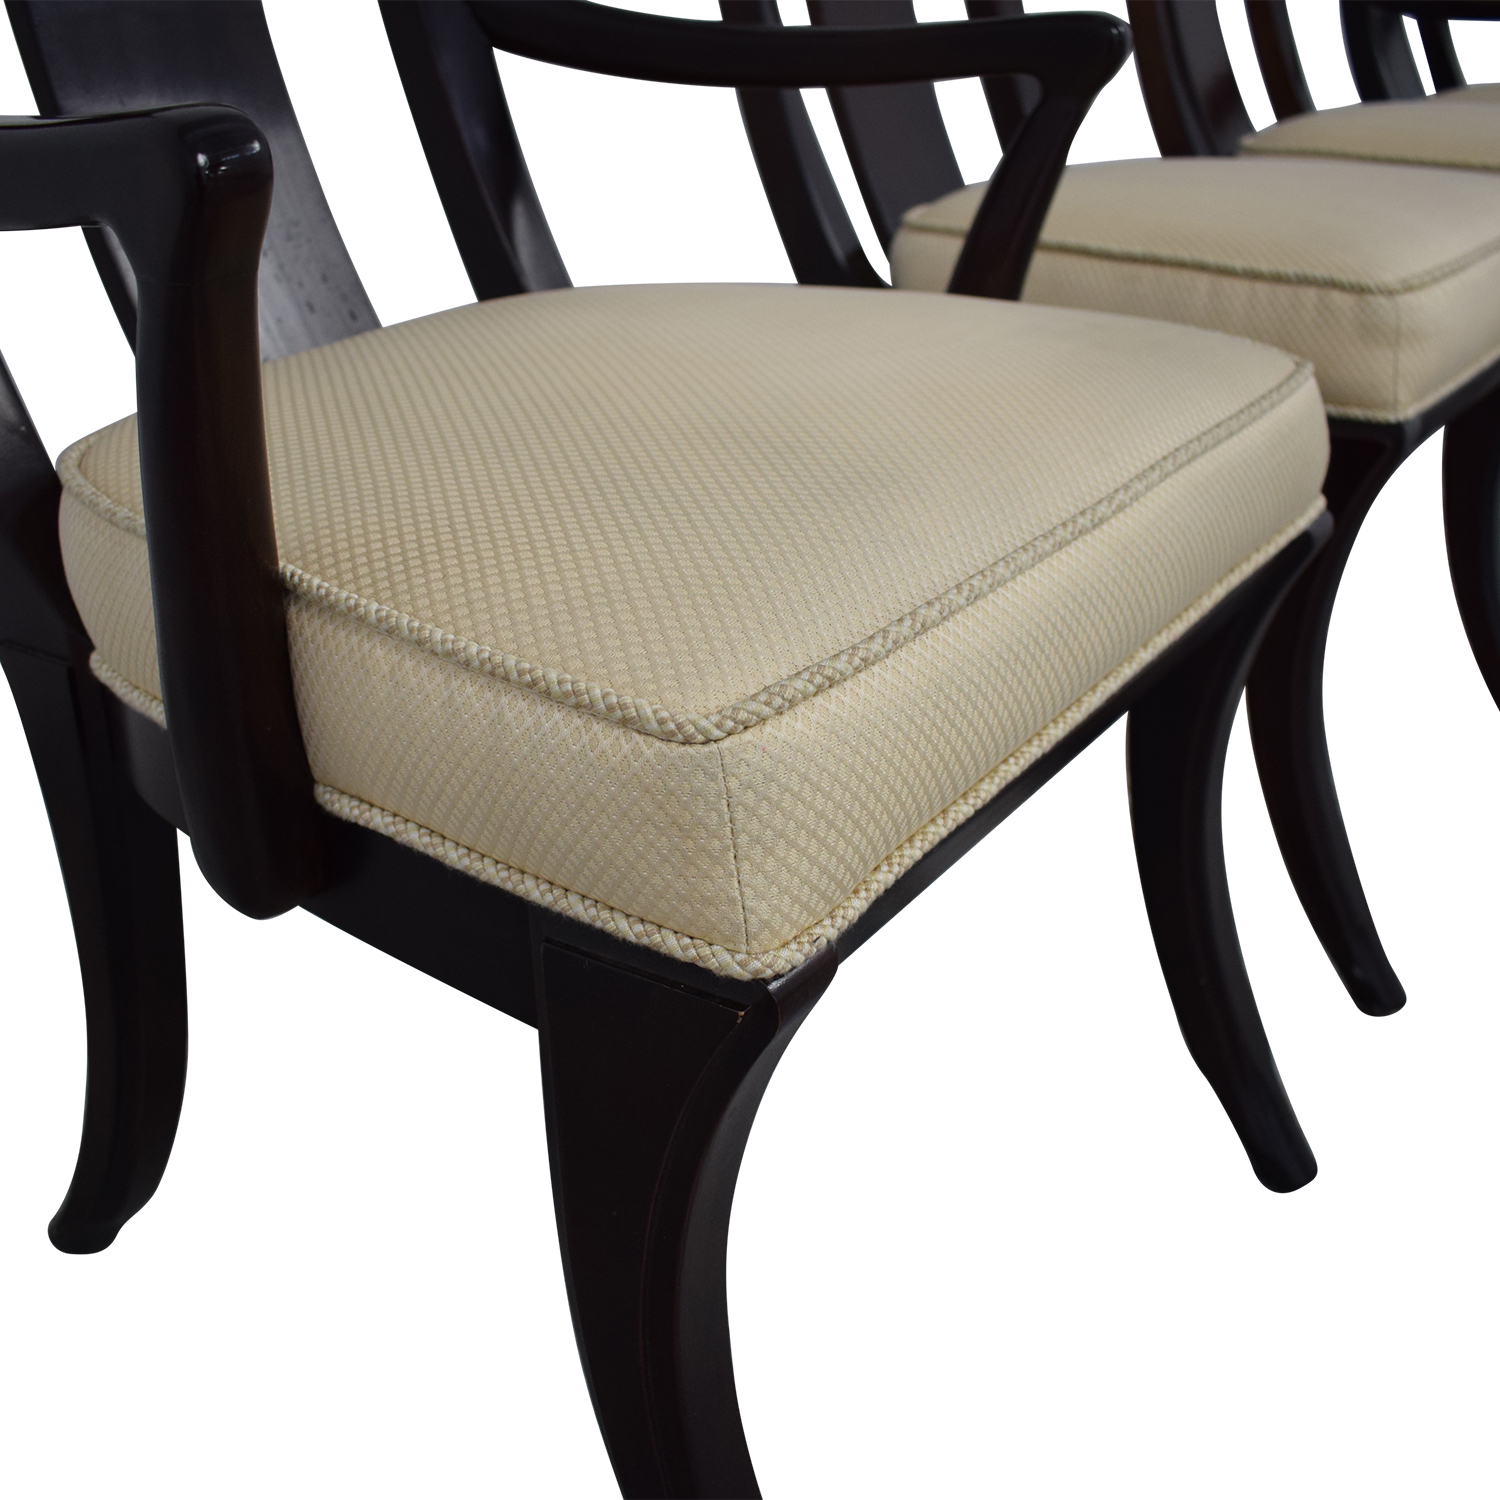 Henredon Upholstered Dining Chairs / Dining Chairs